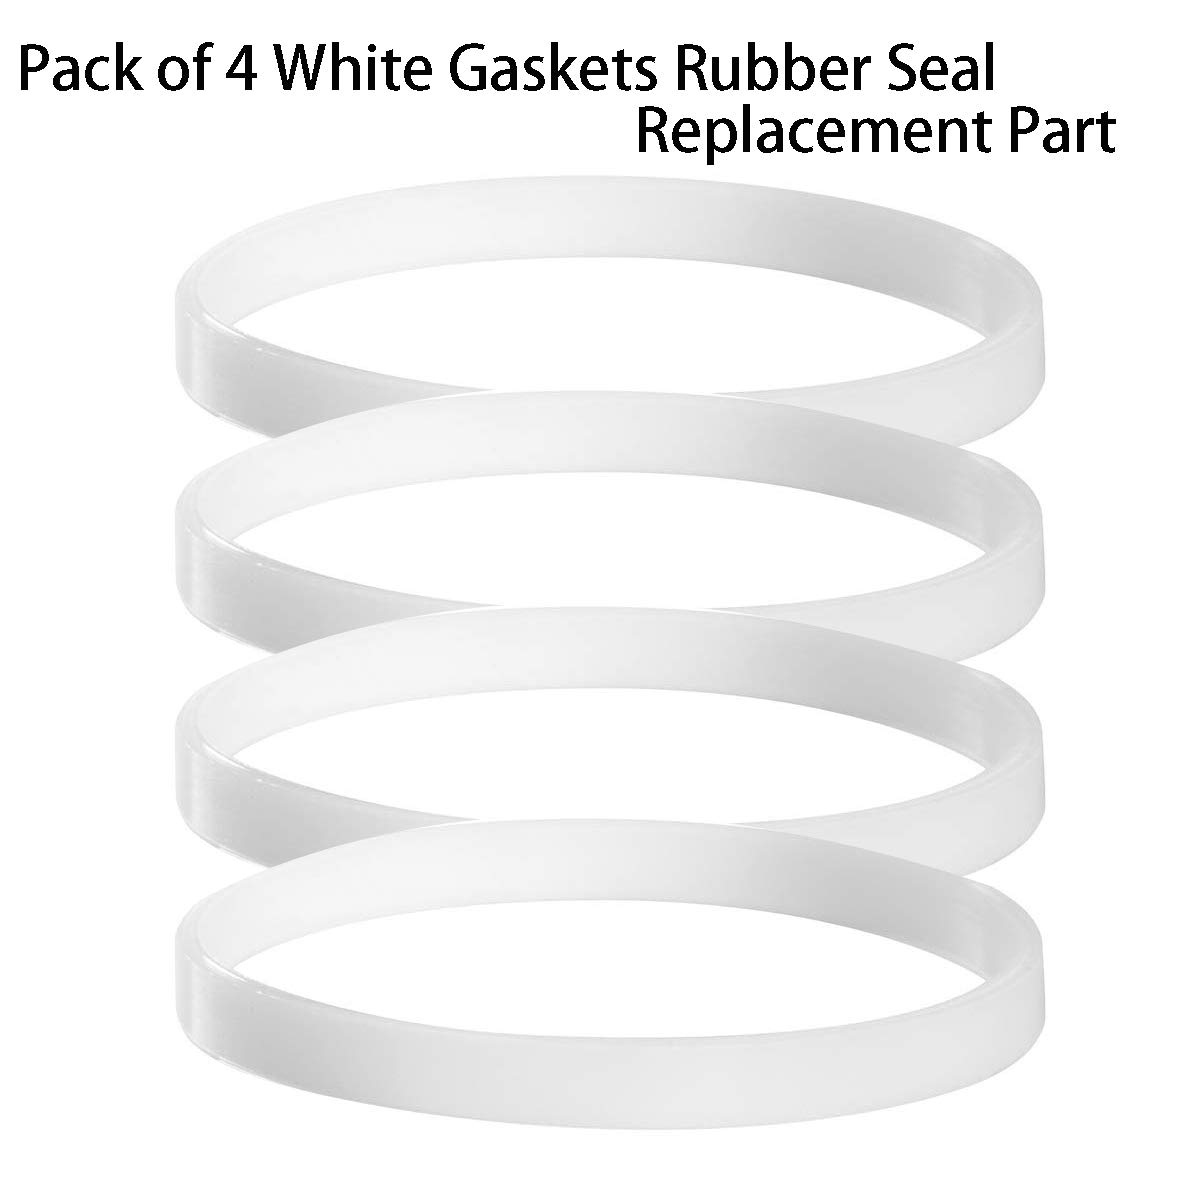 Pack of 4 White Gaskets Rubber Sealing O-Ring Replacement Part for Nutri Ninja Blenders 900W BL450-70, BL451-70, BL454-70, BL455-70 1000W BL480-70, BL480W-70, BL481-70, BL482-70, BL483-70,BL484-70